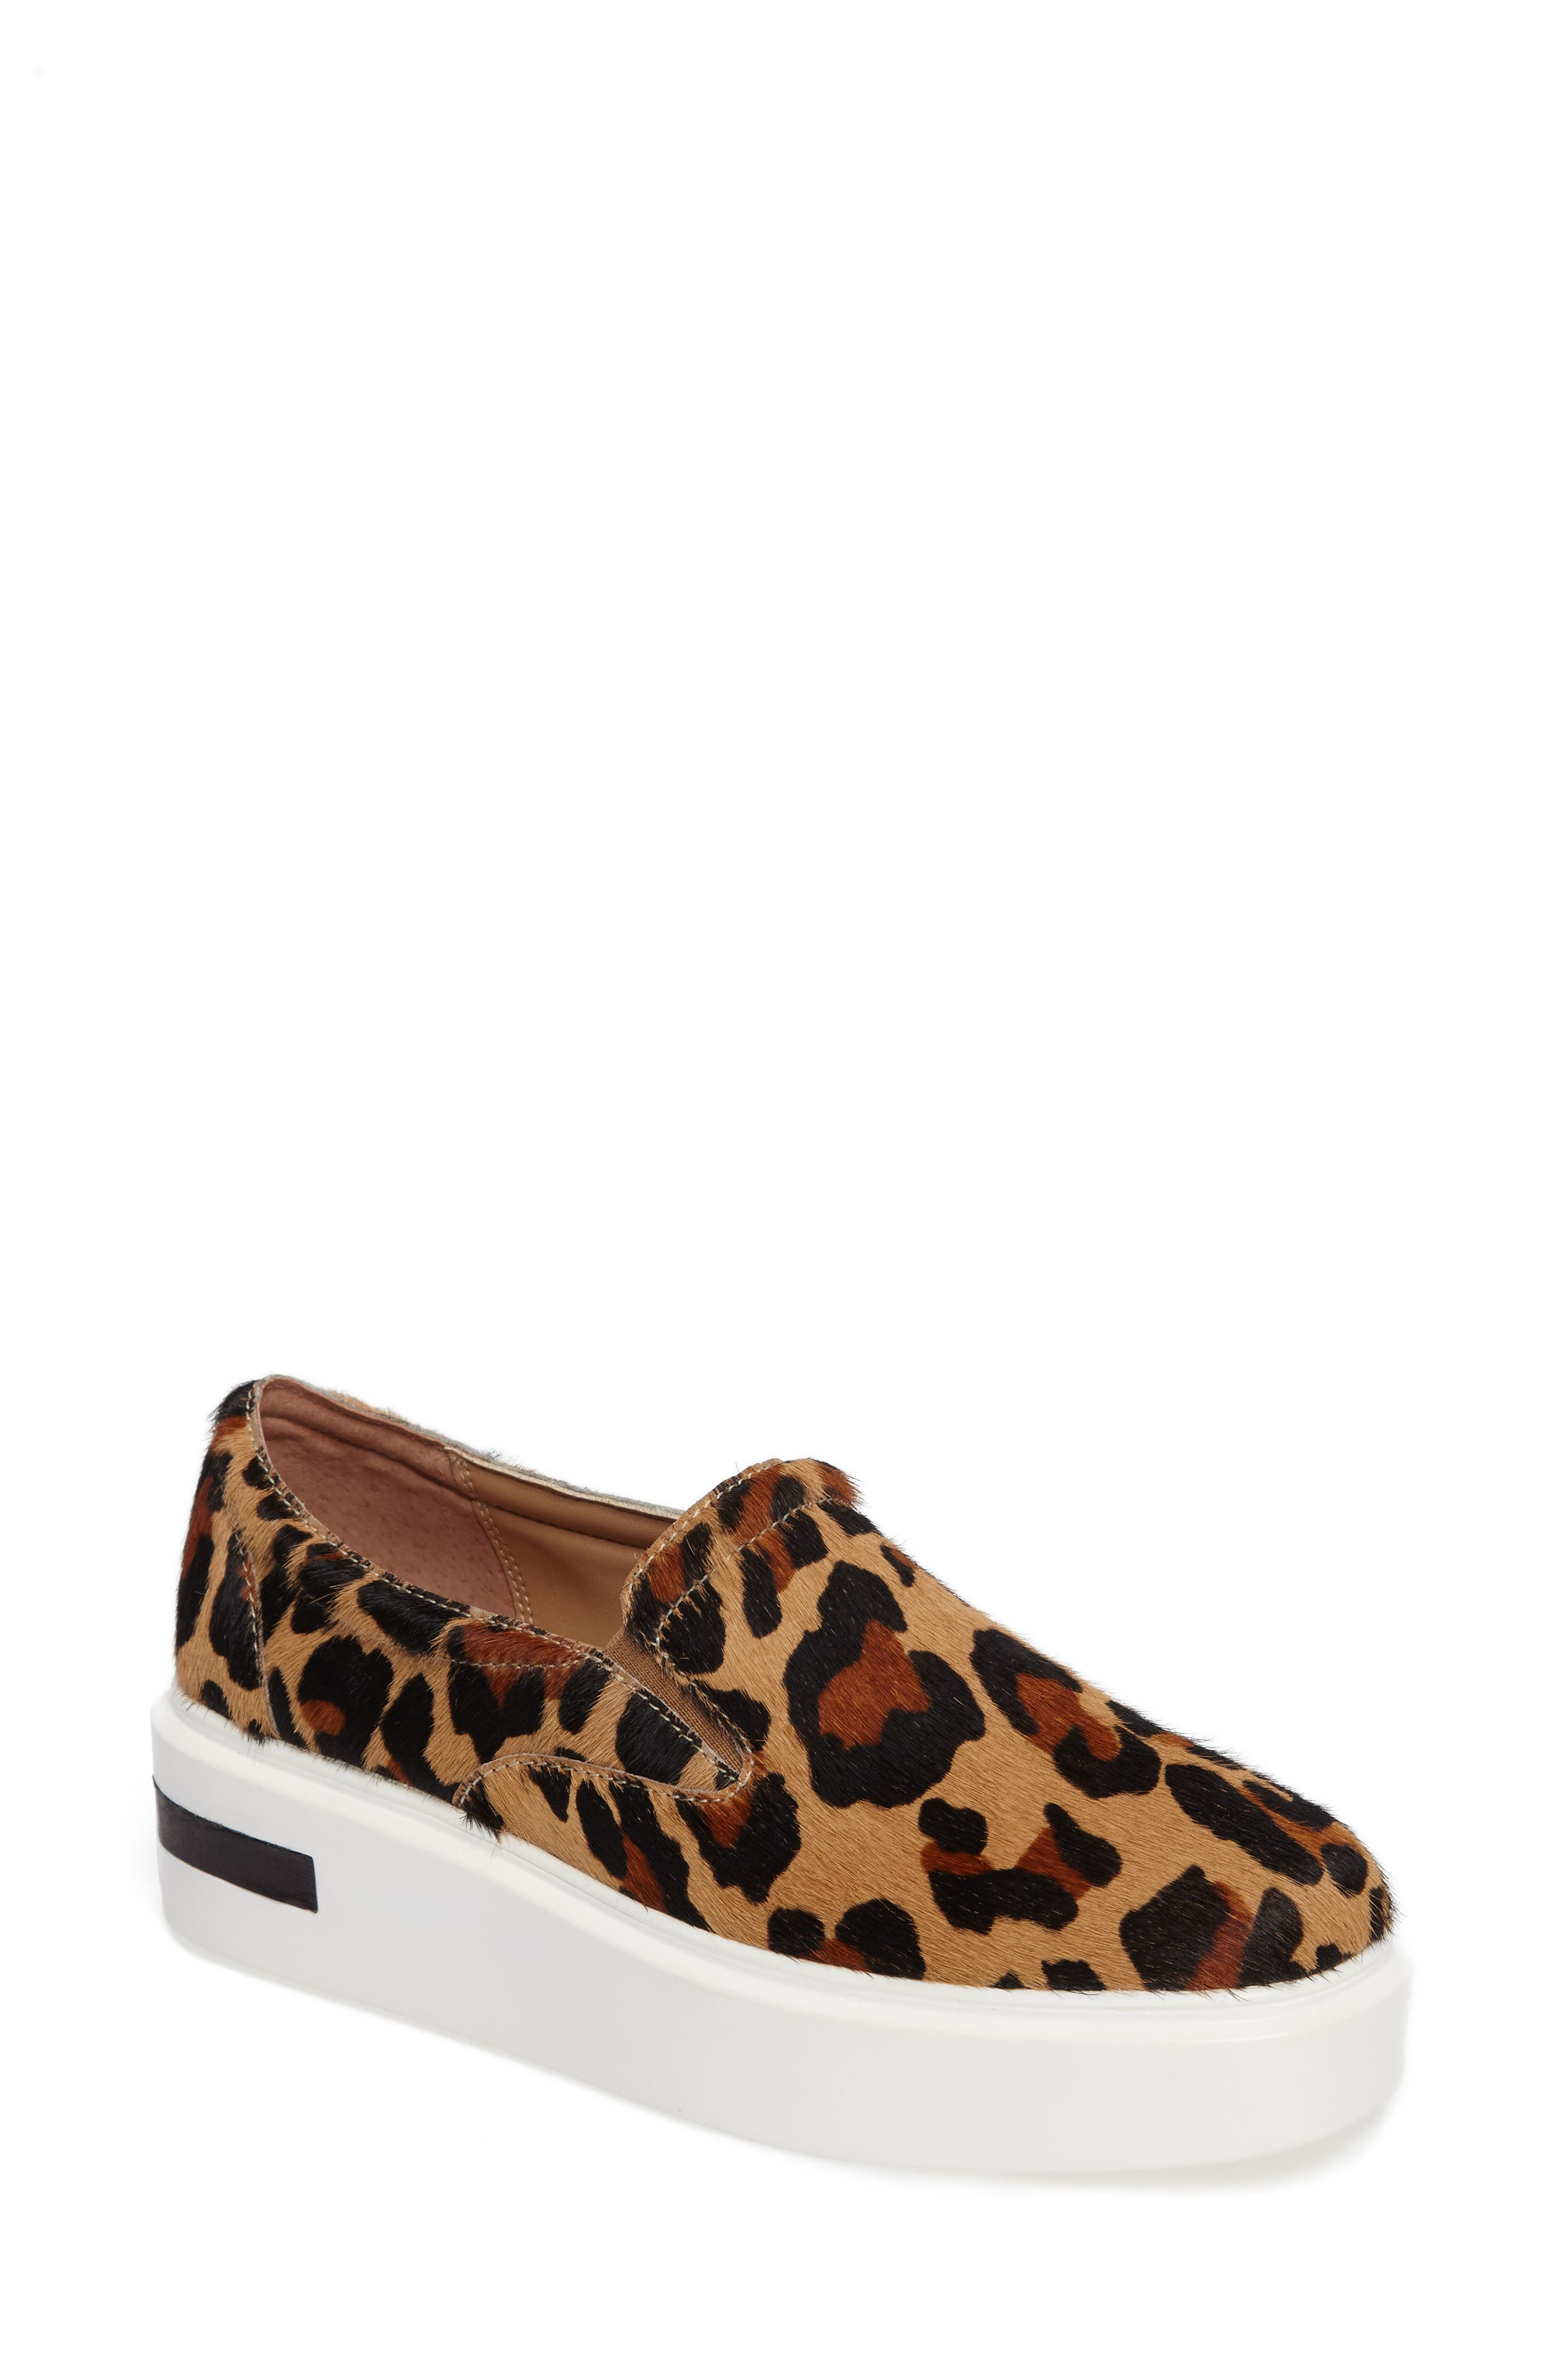 Linea Paolo Fairfax II Genuine Calf Hair Platform Sneaker (Women)